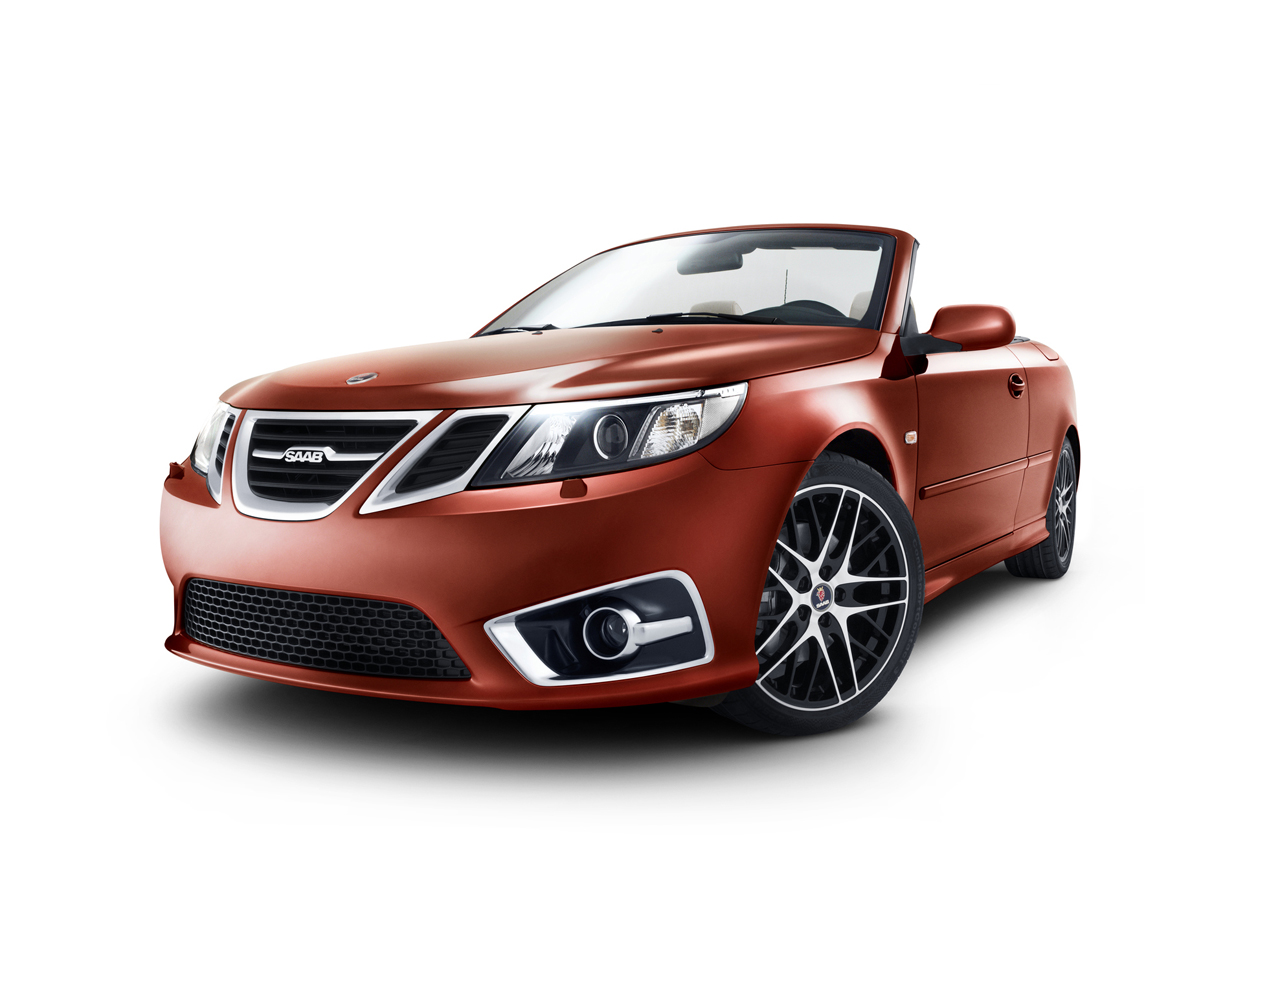 Saab creates a celebratory model 9-3 Convertible Independence Edition